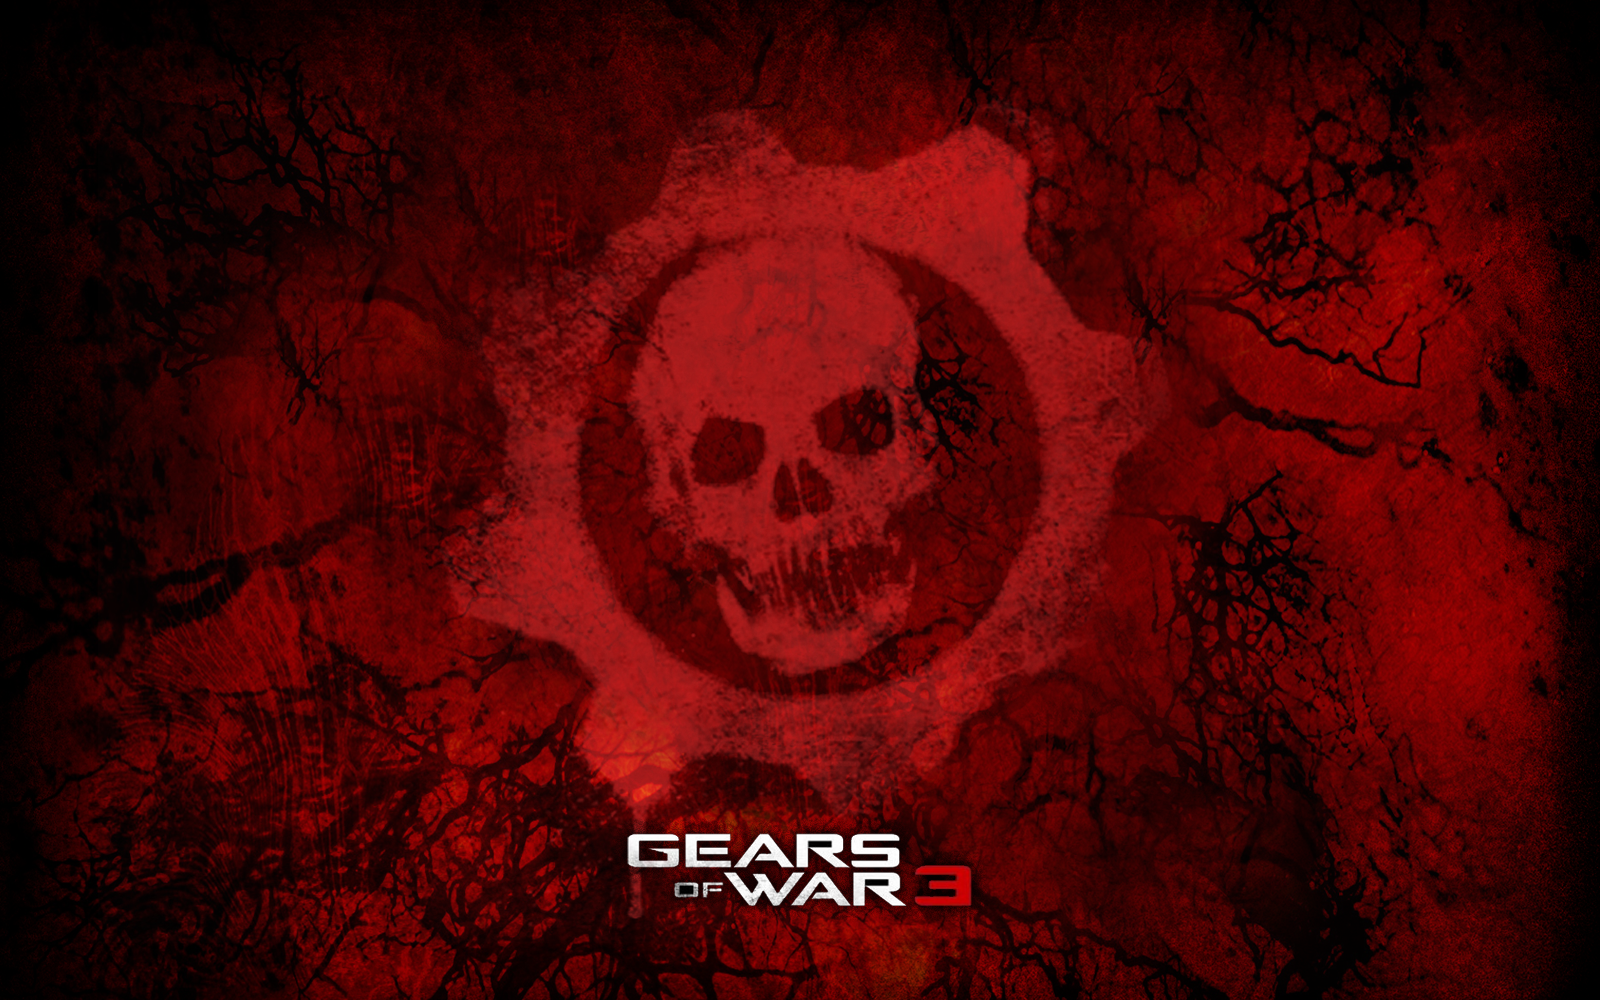 Free Download Gears Of War 3 Wallpapers 1600x1000 For Your